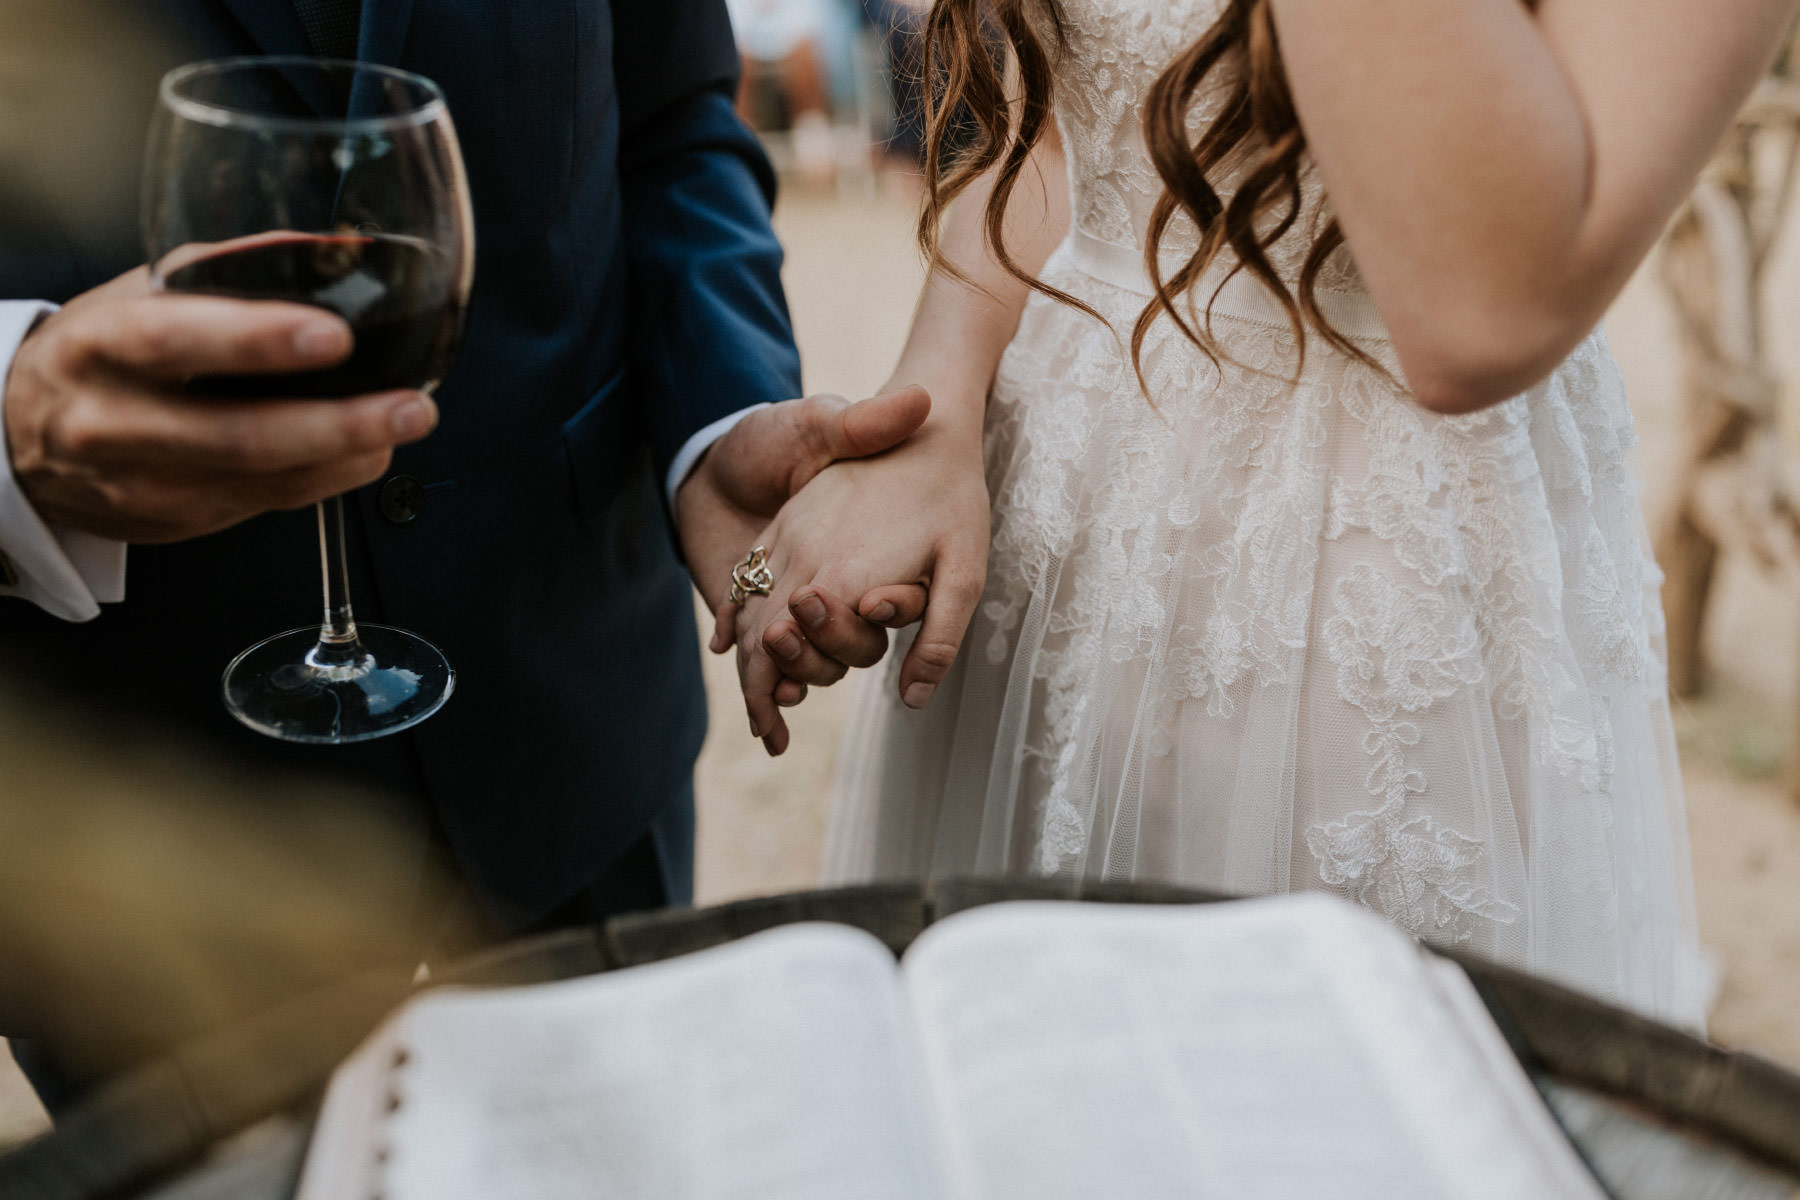 Bride and groom holding hands during communion